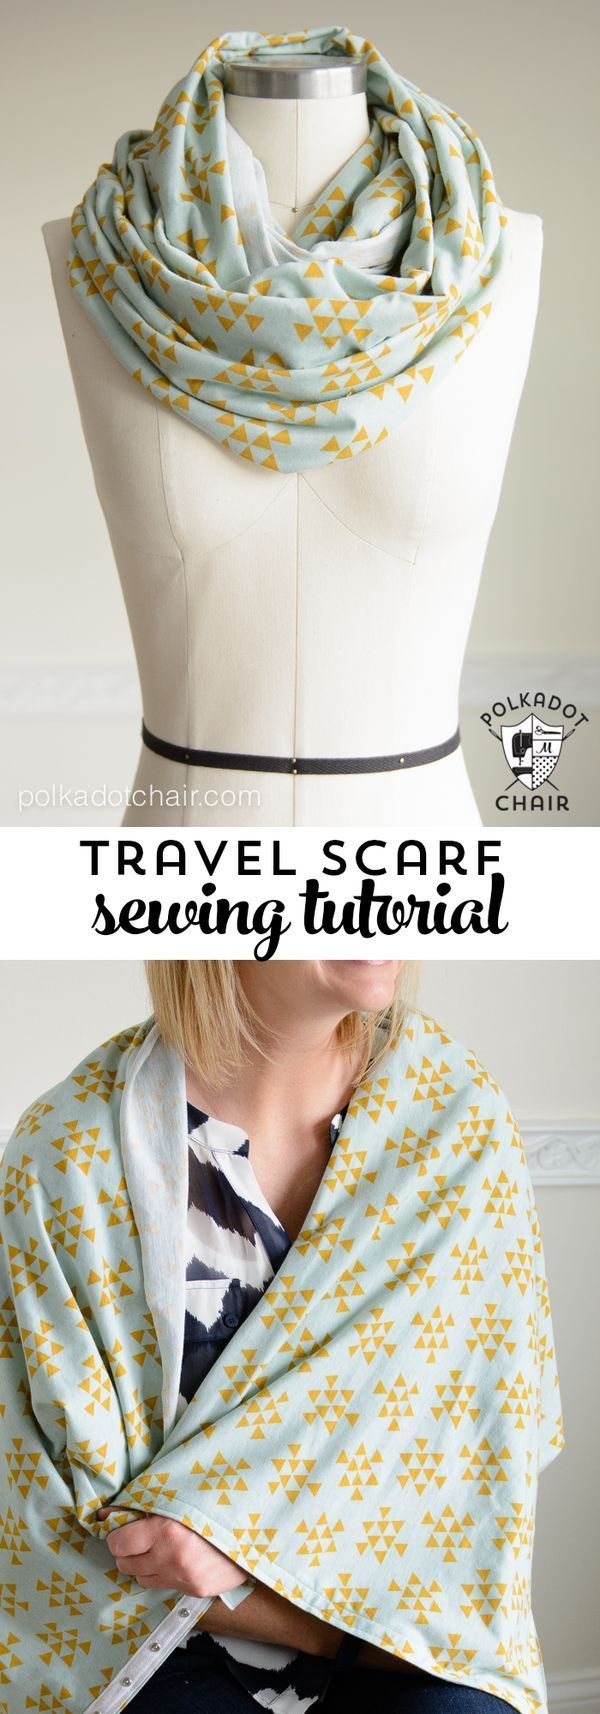 air jordan mens fly wade 2 ev DIY Snap Up Infinity Scarf sewing pattern by Melissa of polkadotchair com   perfect for traveling